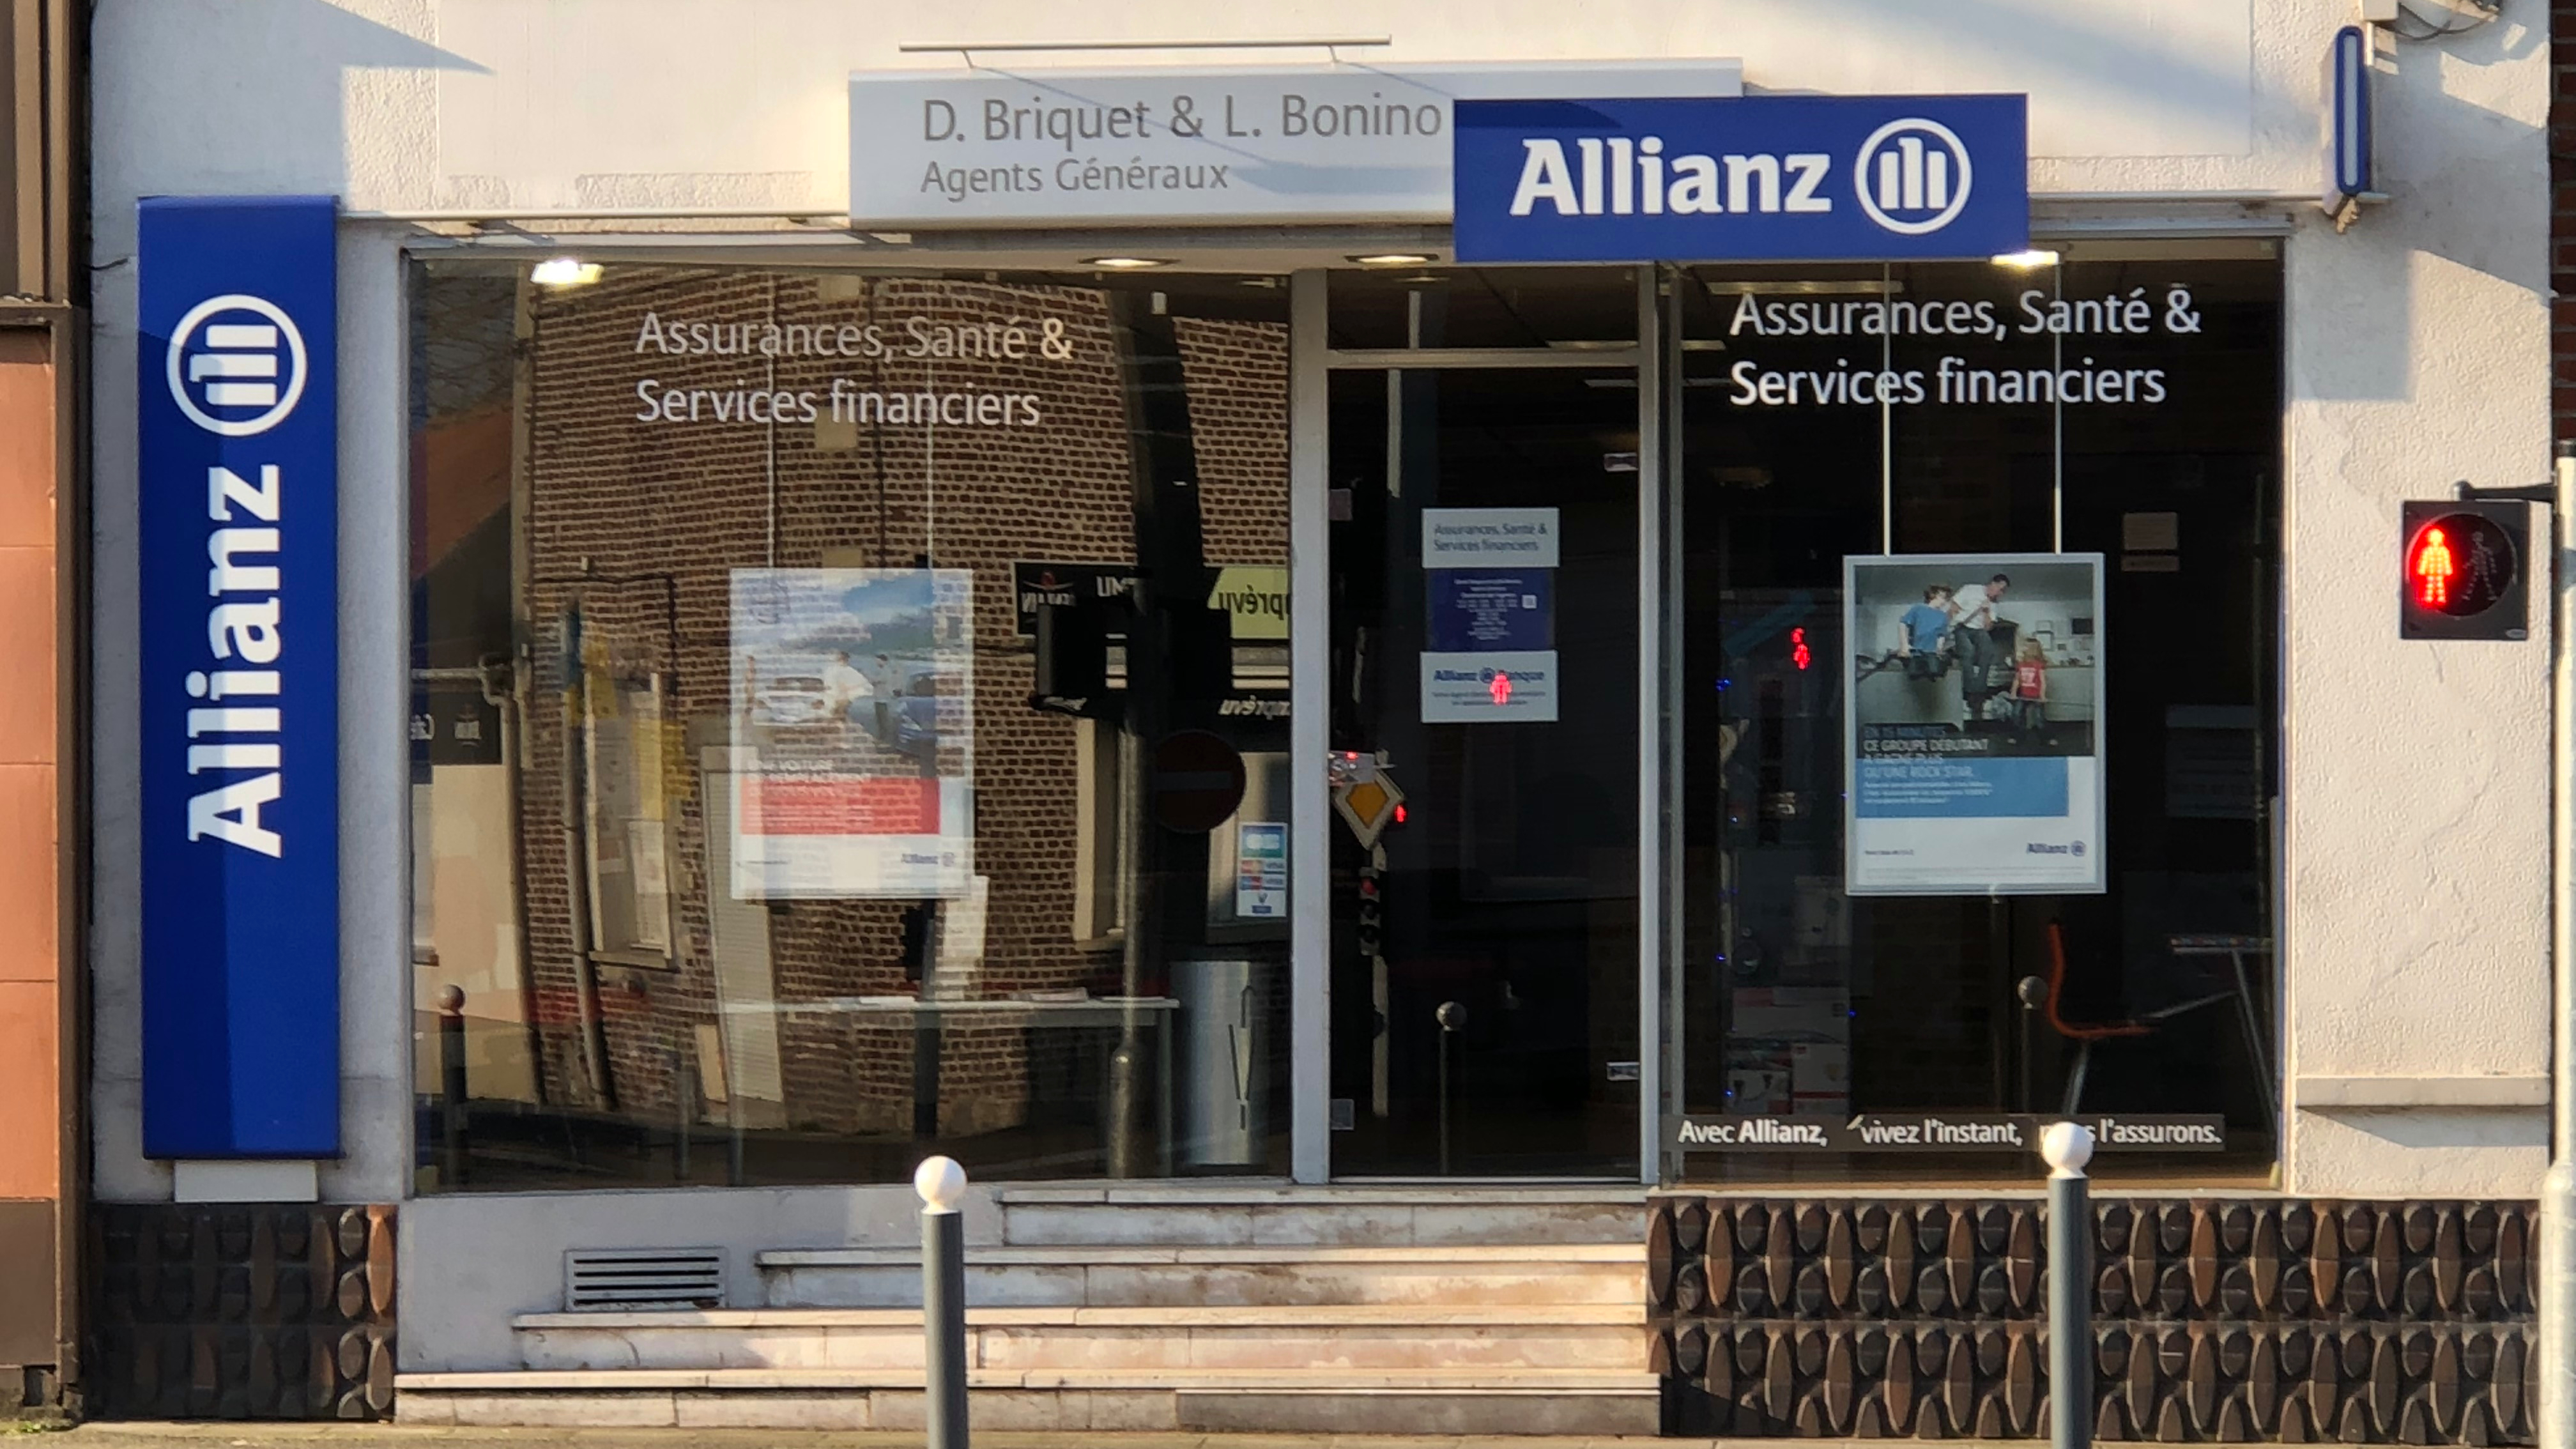 Allianz ANZIN - BRIQUET & BONINO